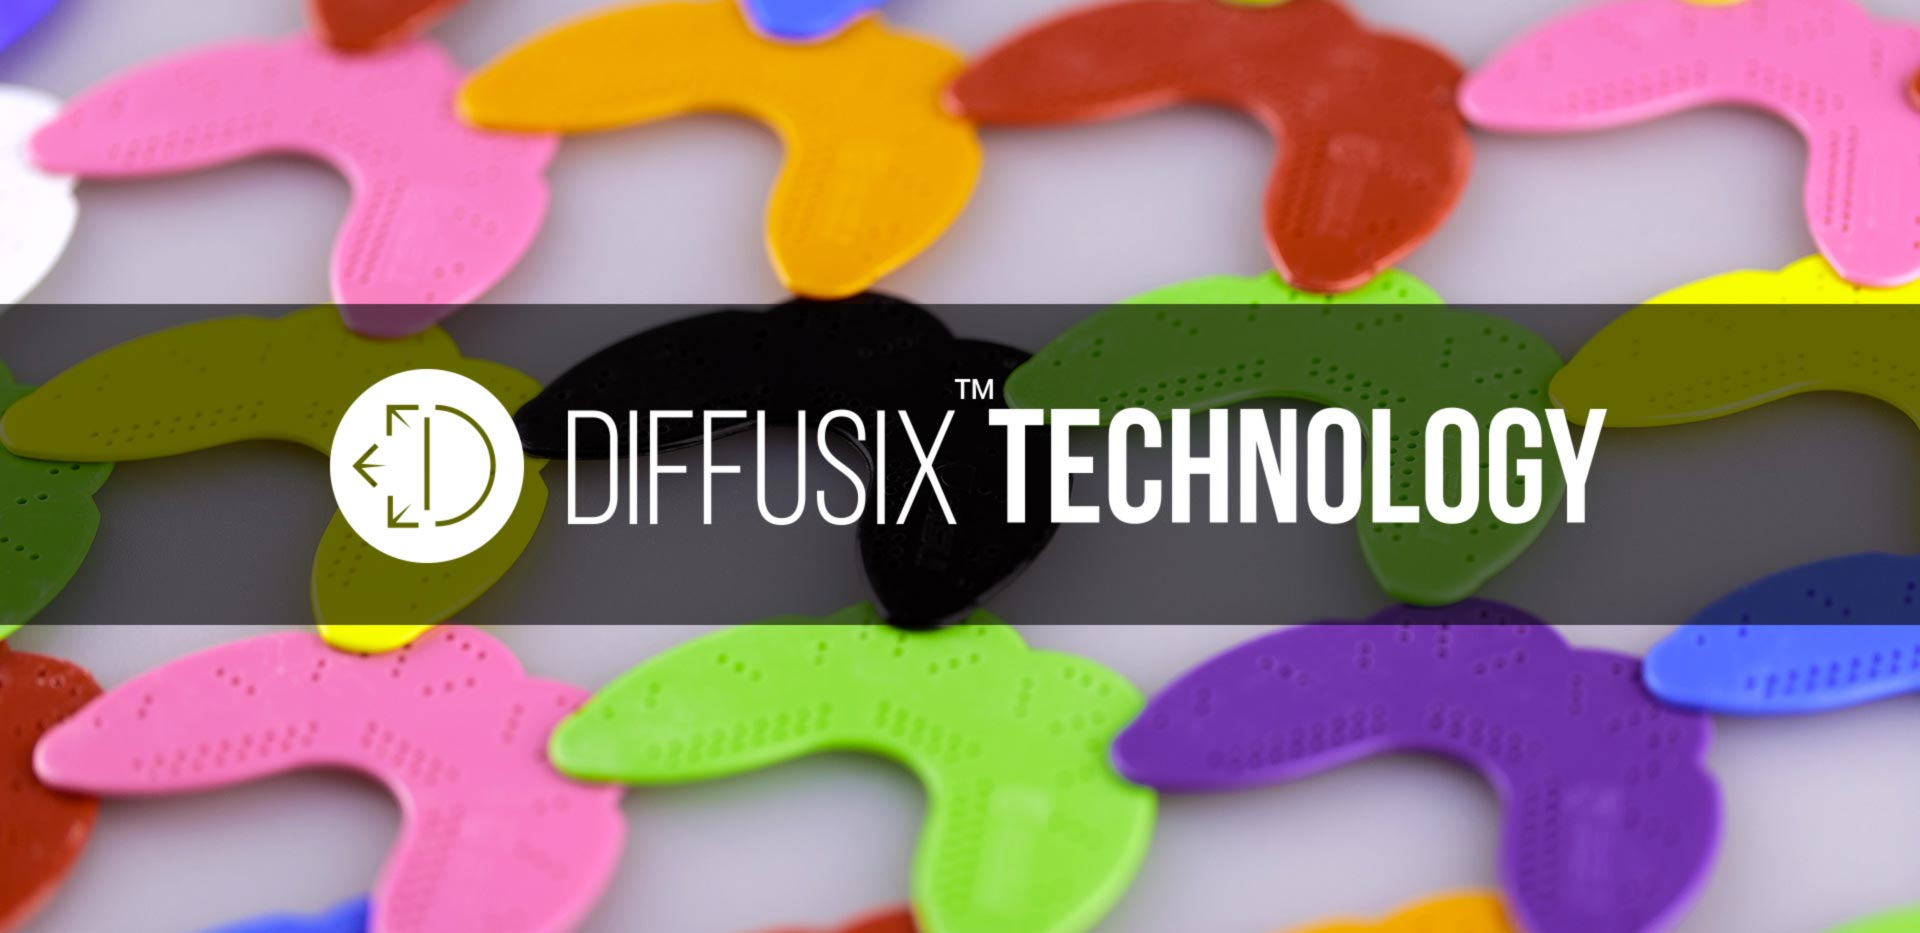 SISU Mouthguard Diffusix Technology